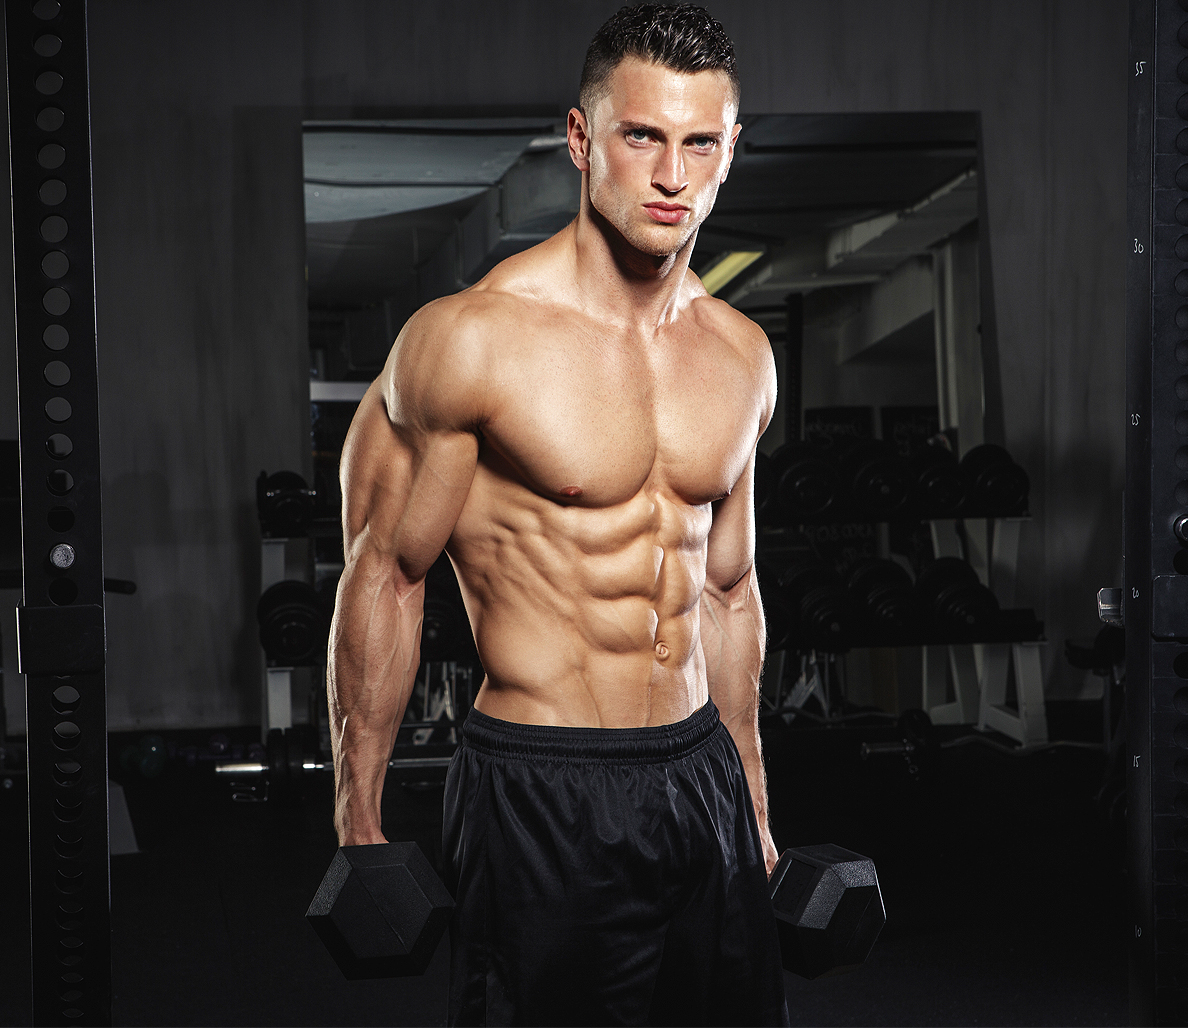 How Much Body Fat Can I Lose in a Week?